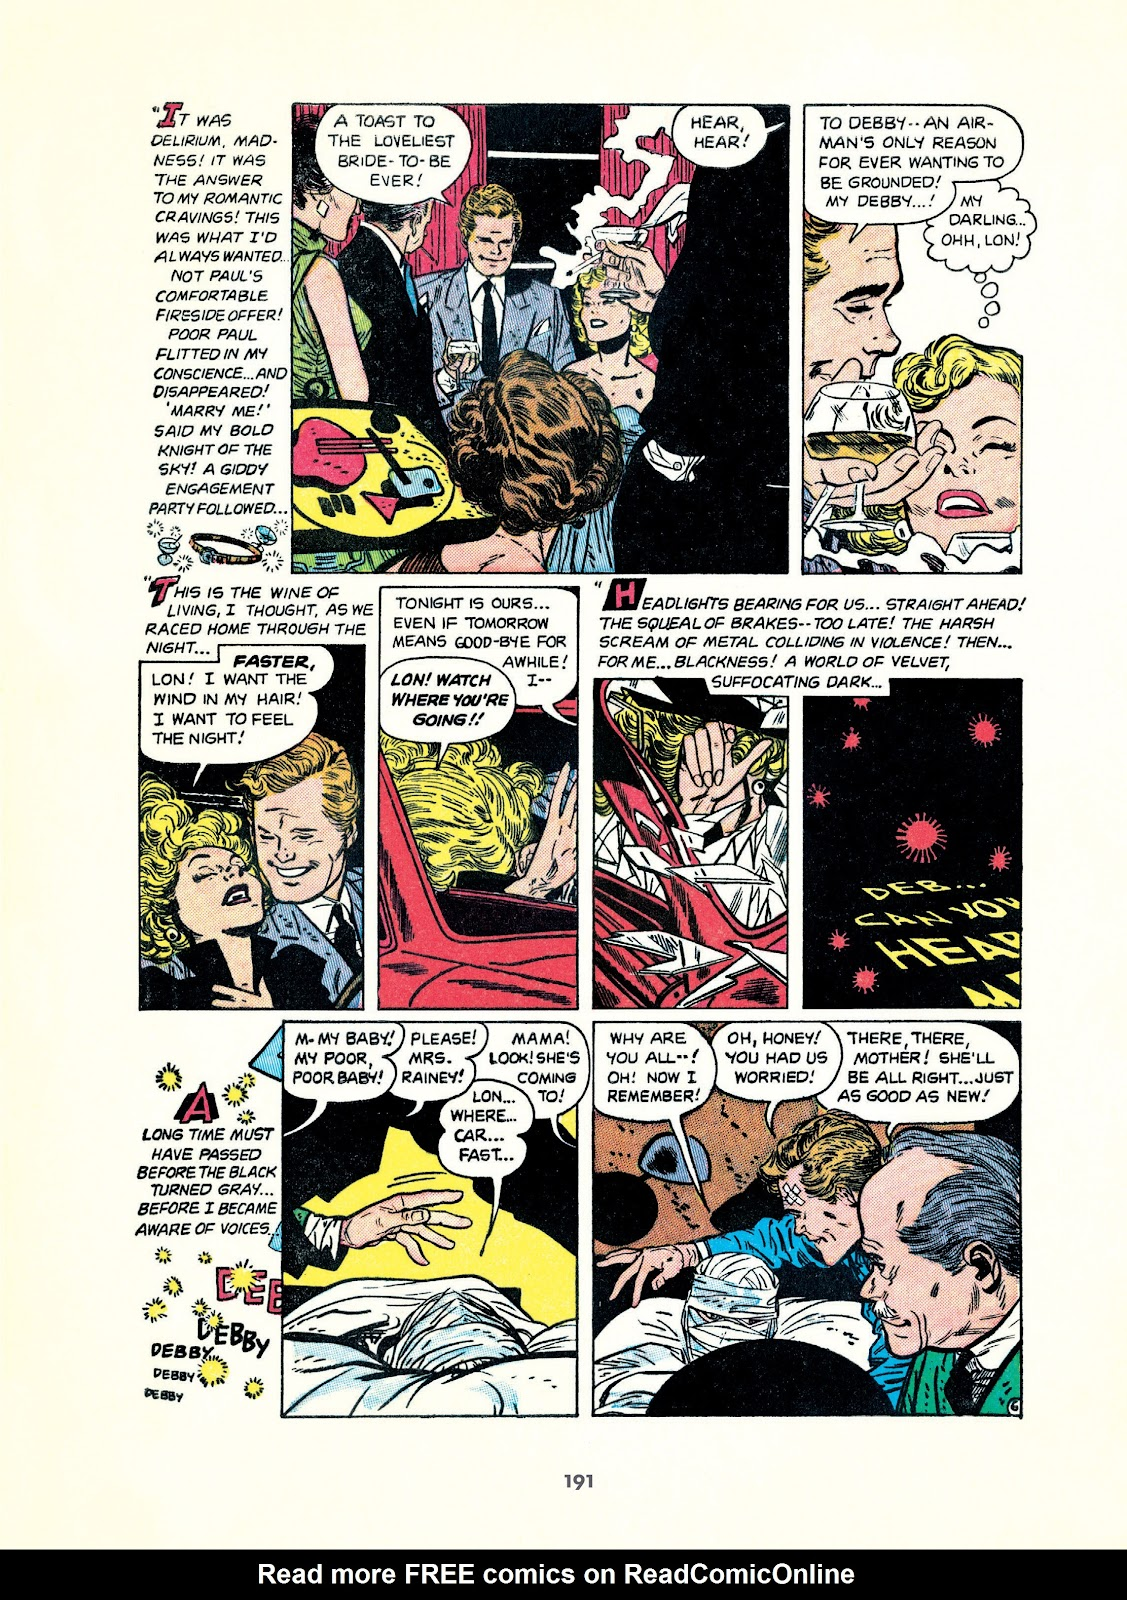 Read online Setting the Standard: Comics by Alex Toth 1952-1954 comic -  Issue # TPB (Part 2) - 92